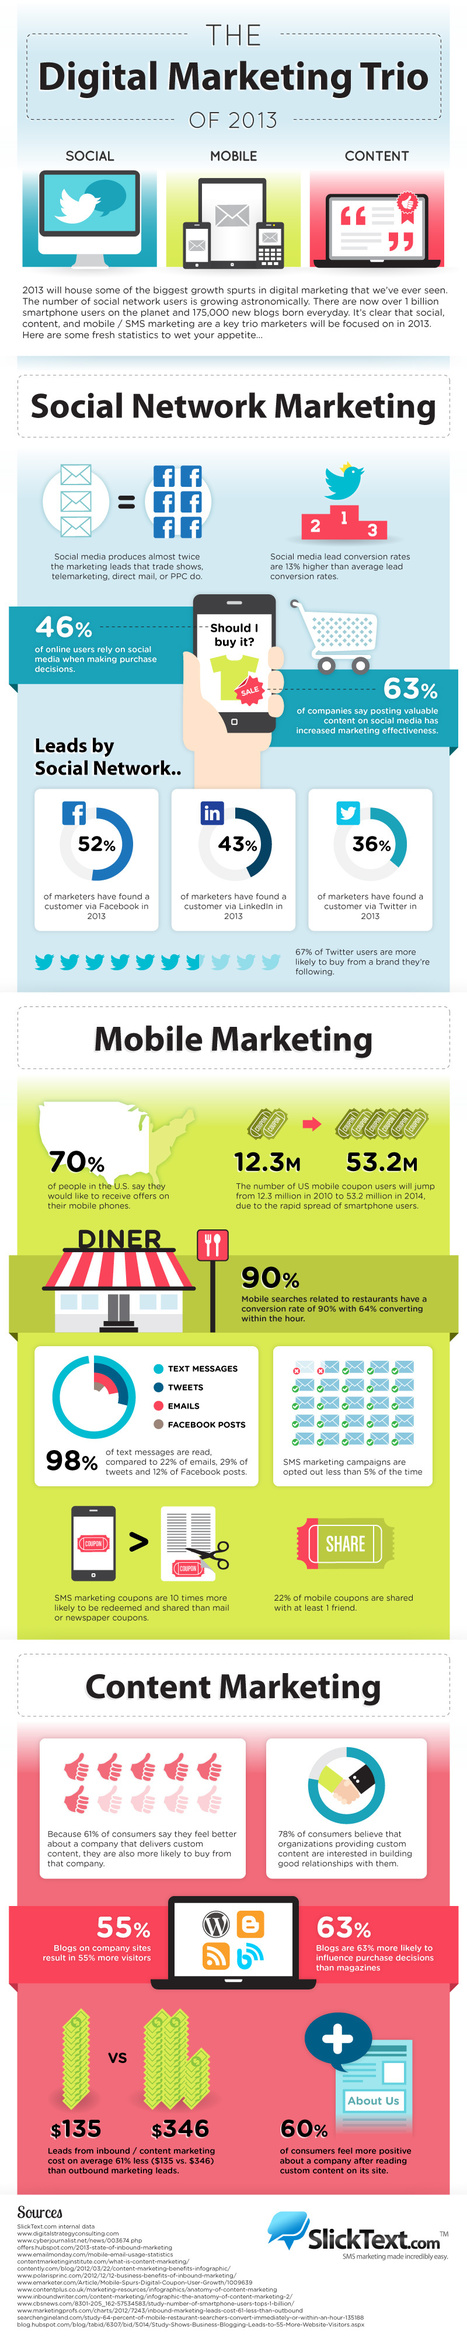 The Digital Marketing Trio Of 2013 [Infographic] | Medien-Werbung-Politik | Scoop.it